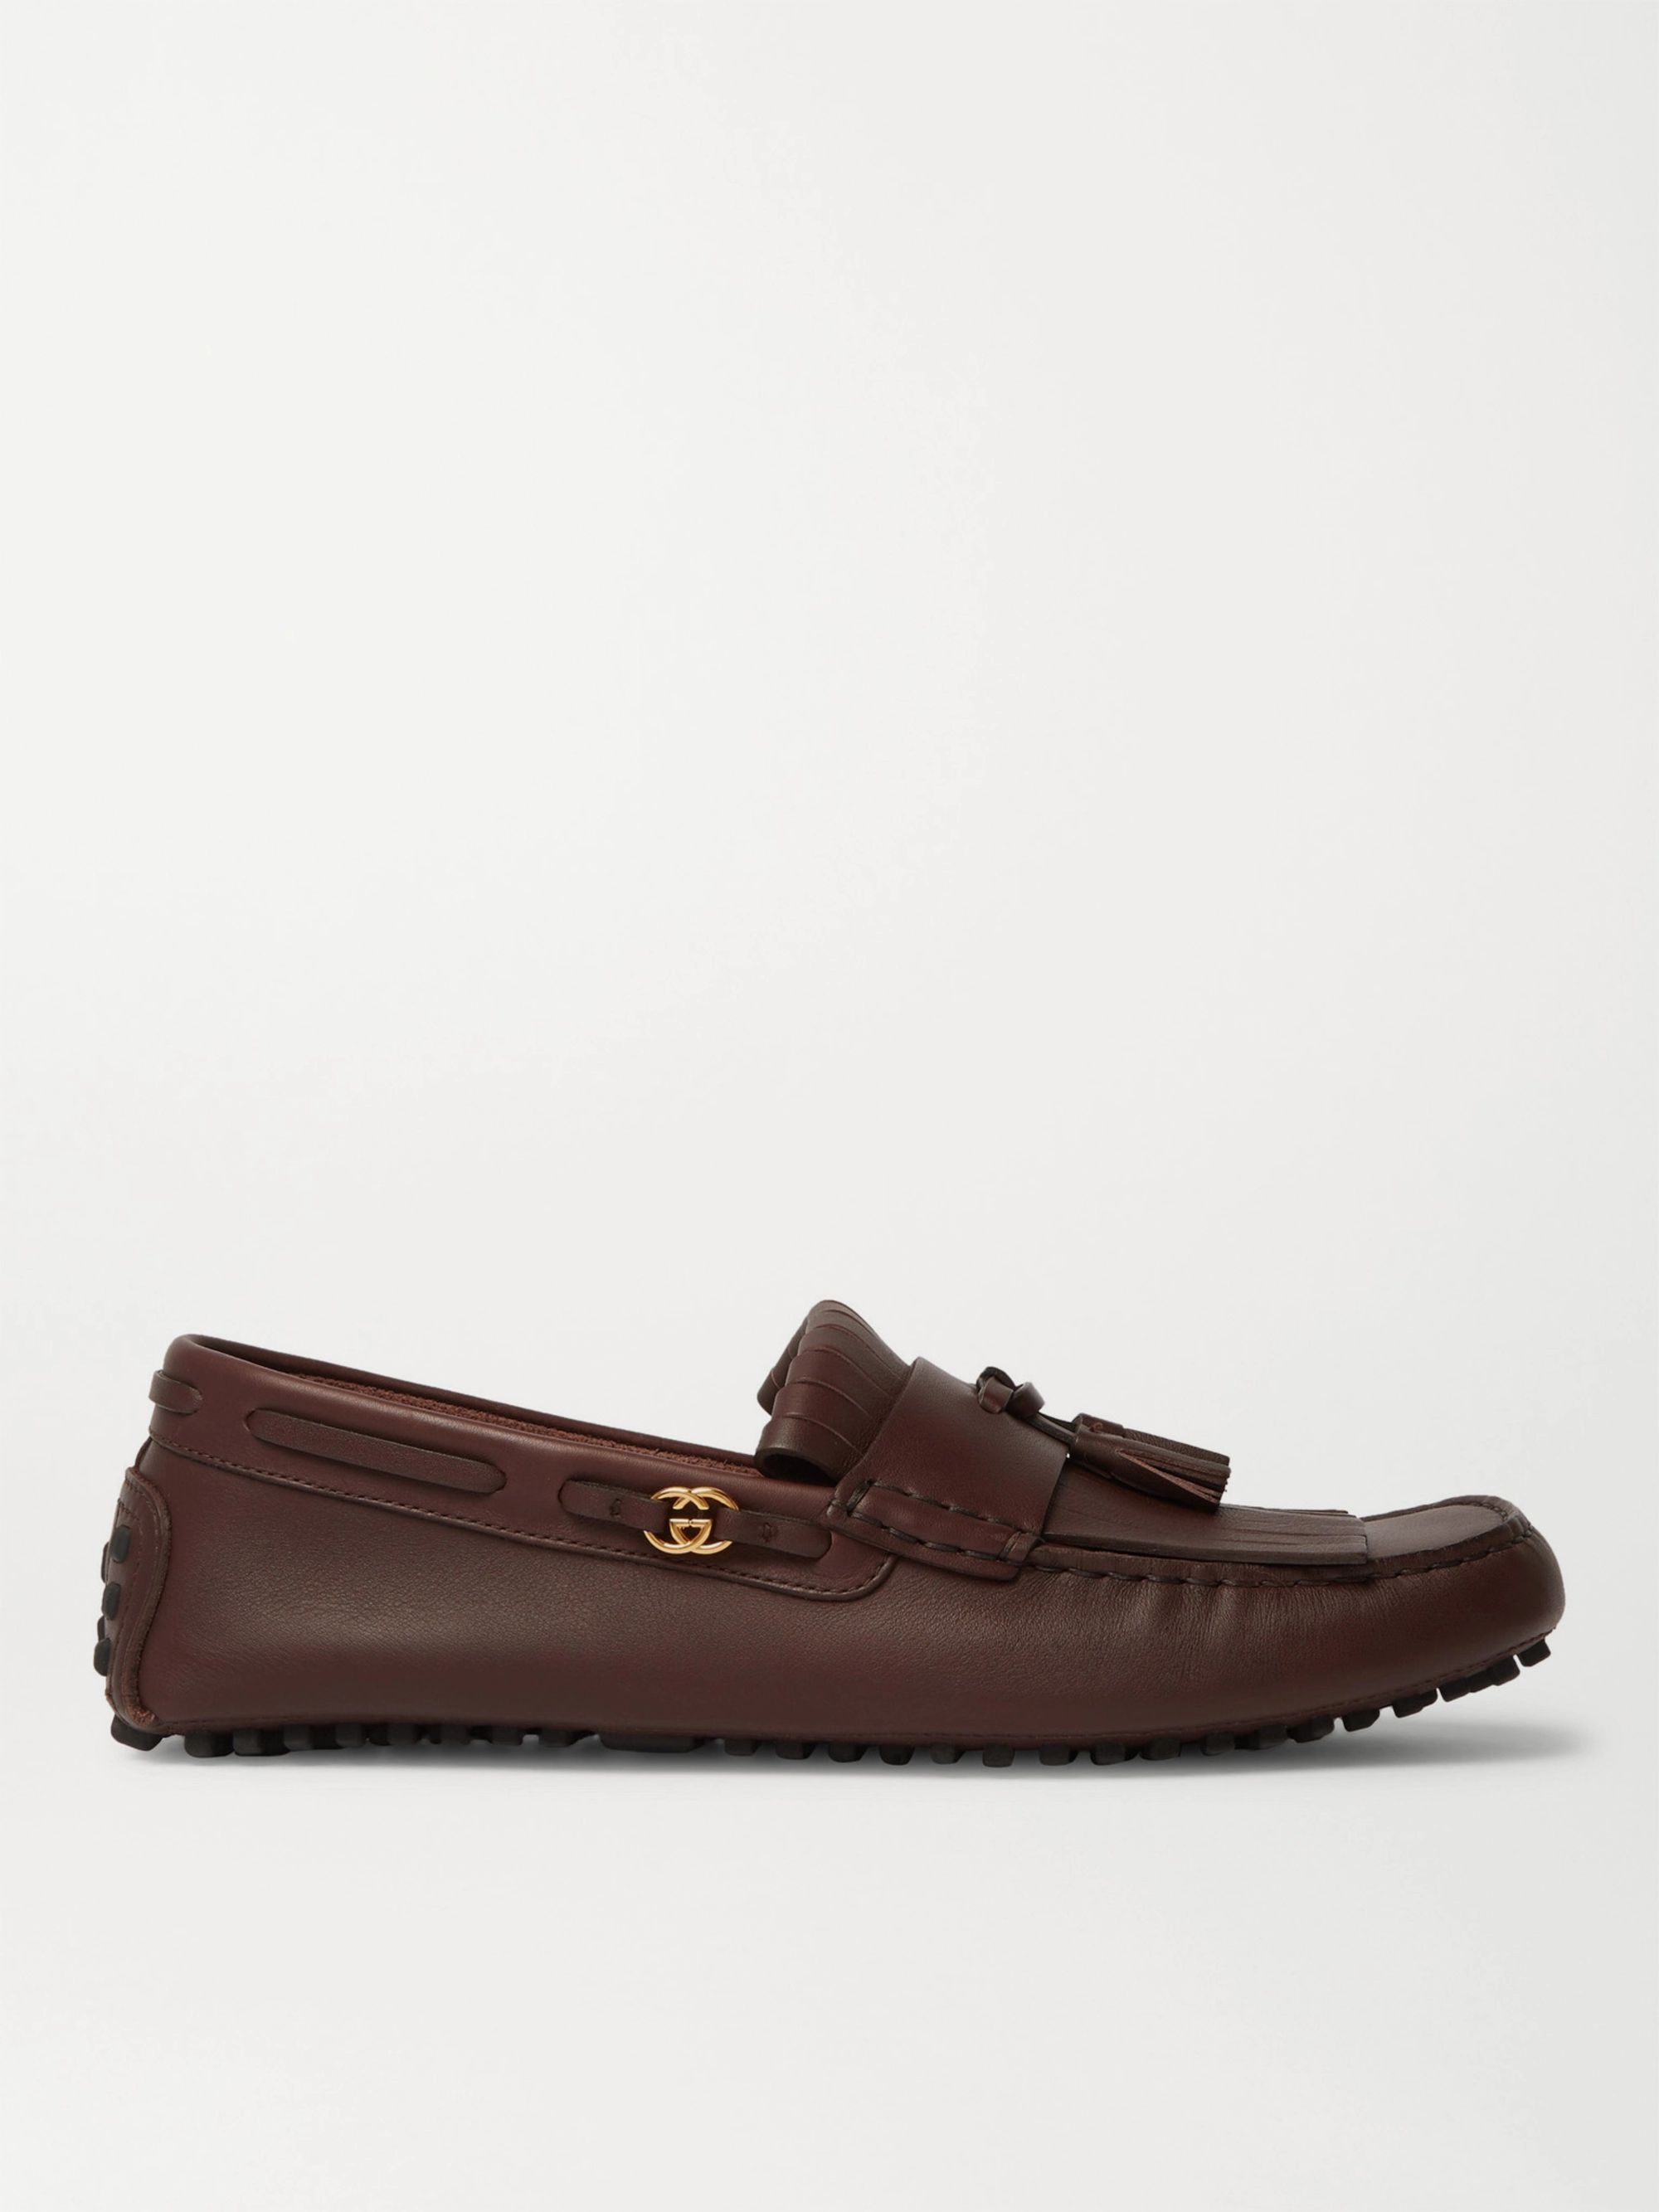 Gucci Ayrton Kilty Leather Tasselled Driving Shoes